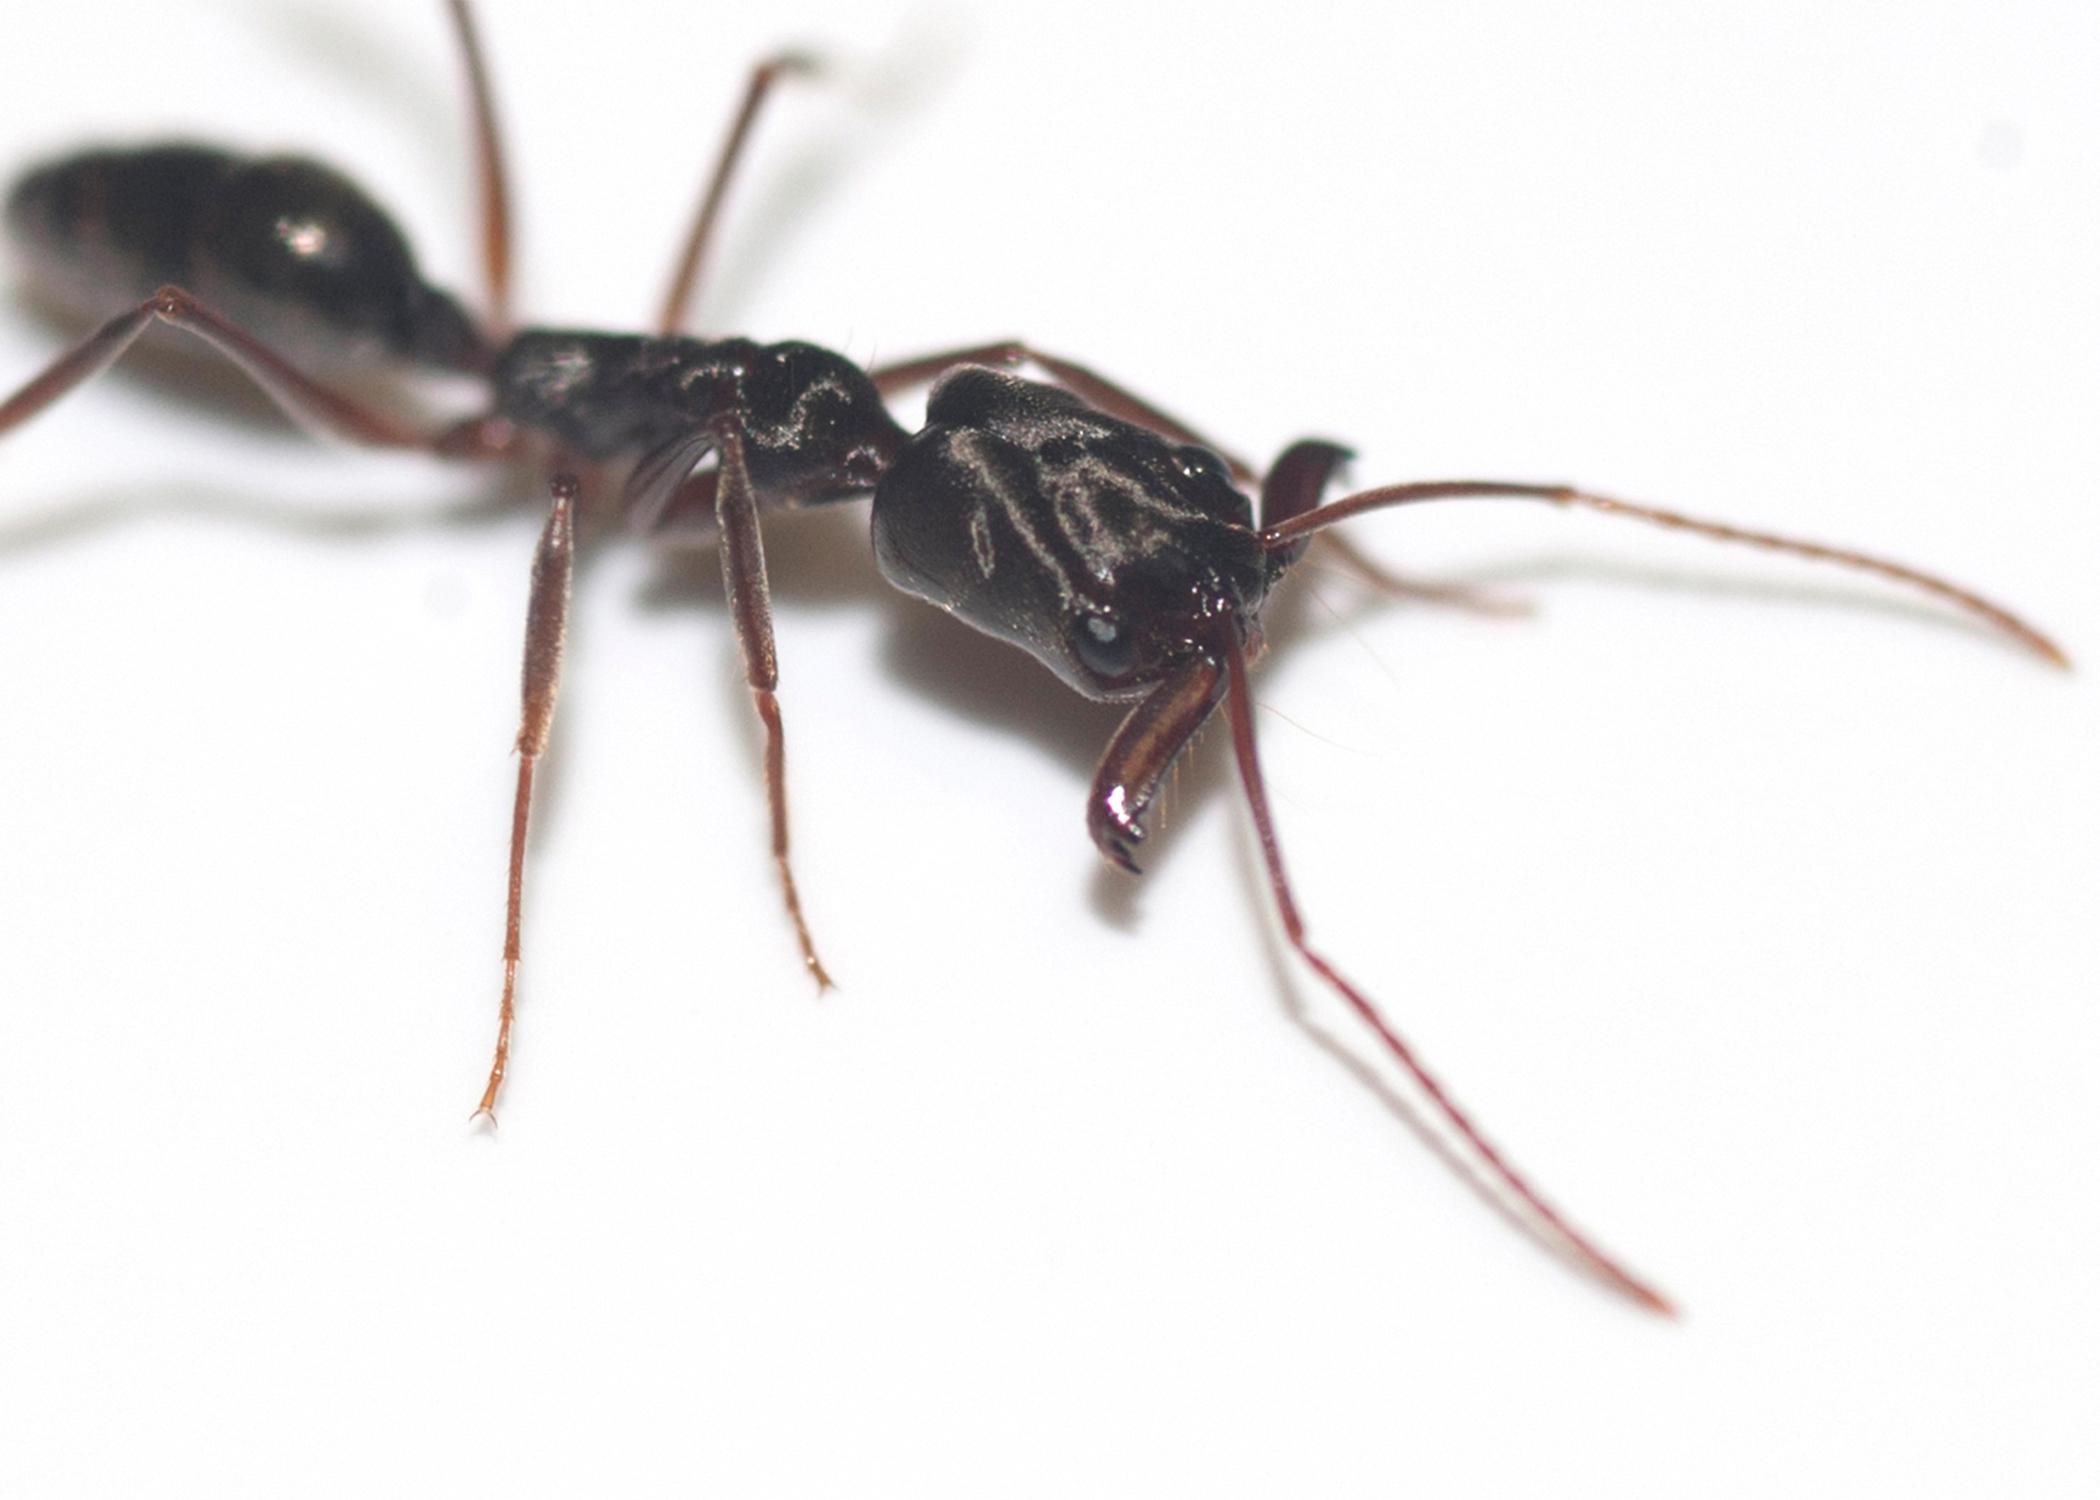 Trapjaw ants can snap their extremely large and powerful mandibles together to catch prey or perform a defensive maneuver that allows them to jump several inches away from danger. (Photo by MSU Ag Communications/Kat Lawrence)